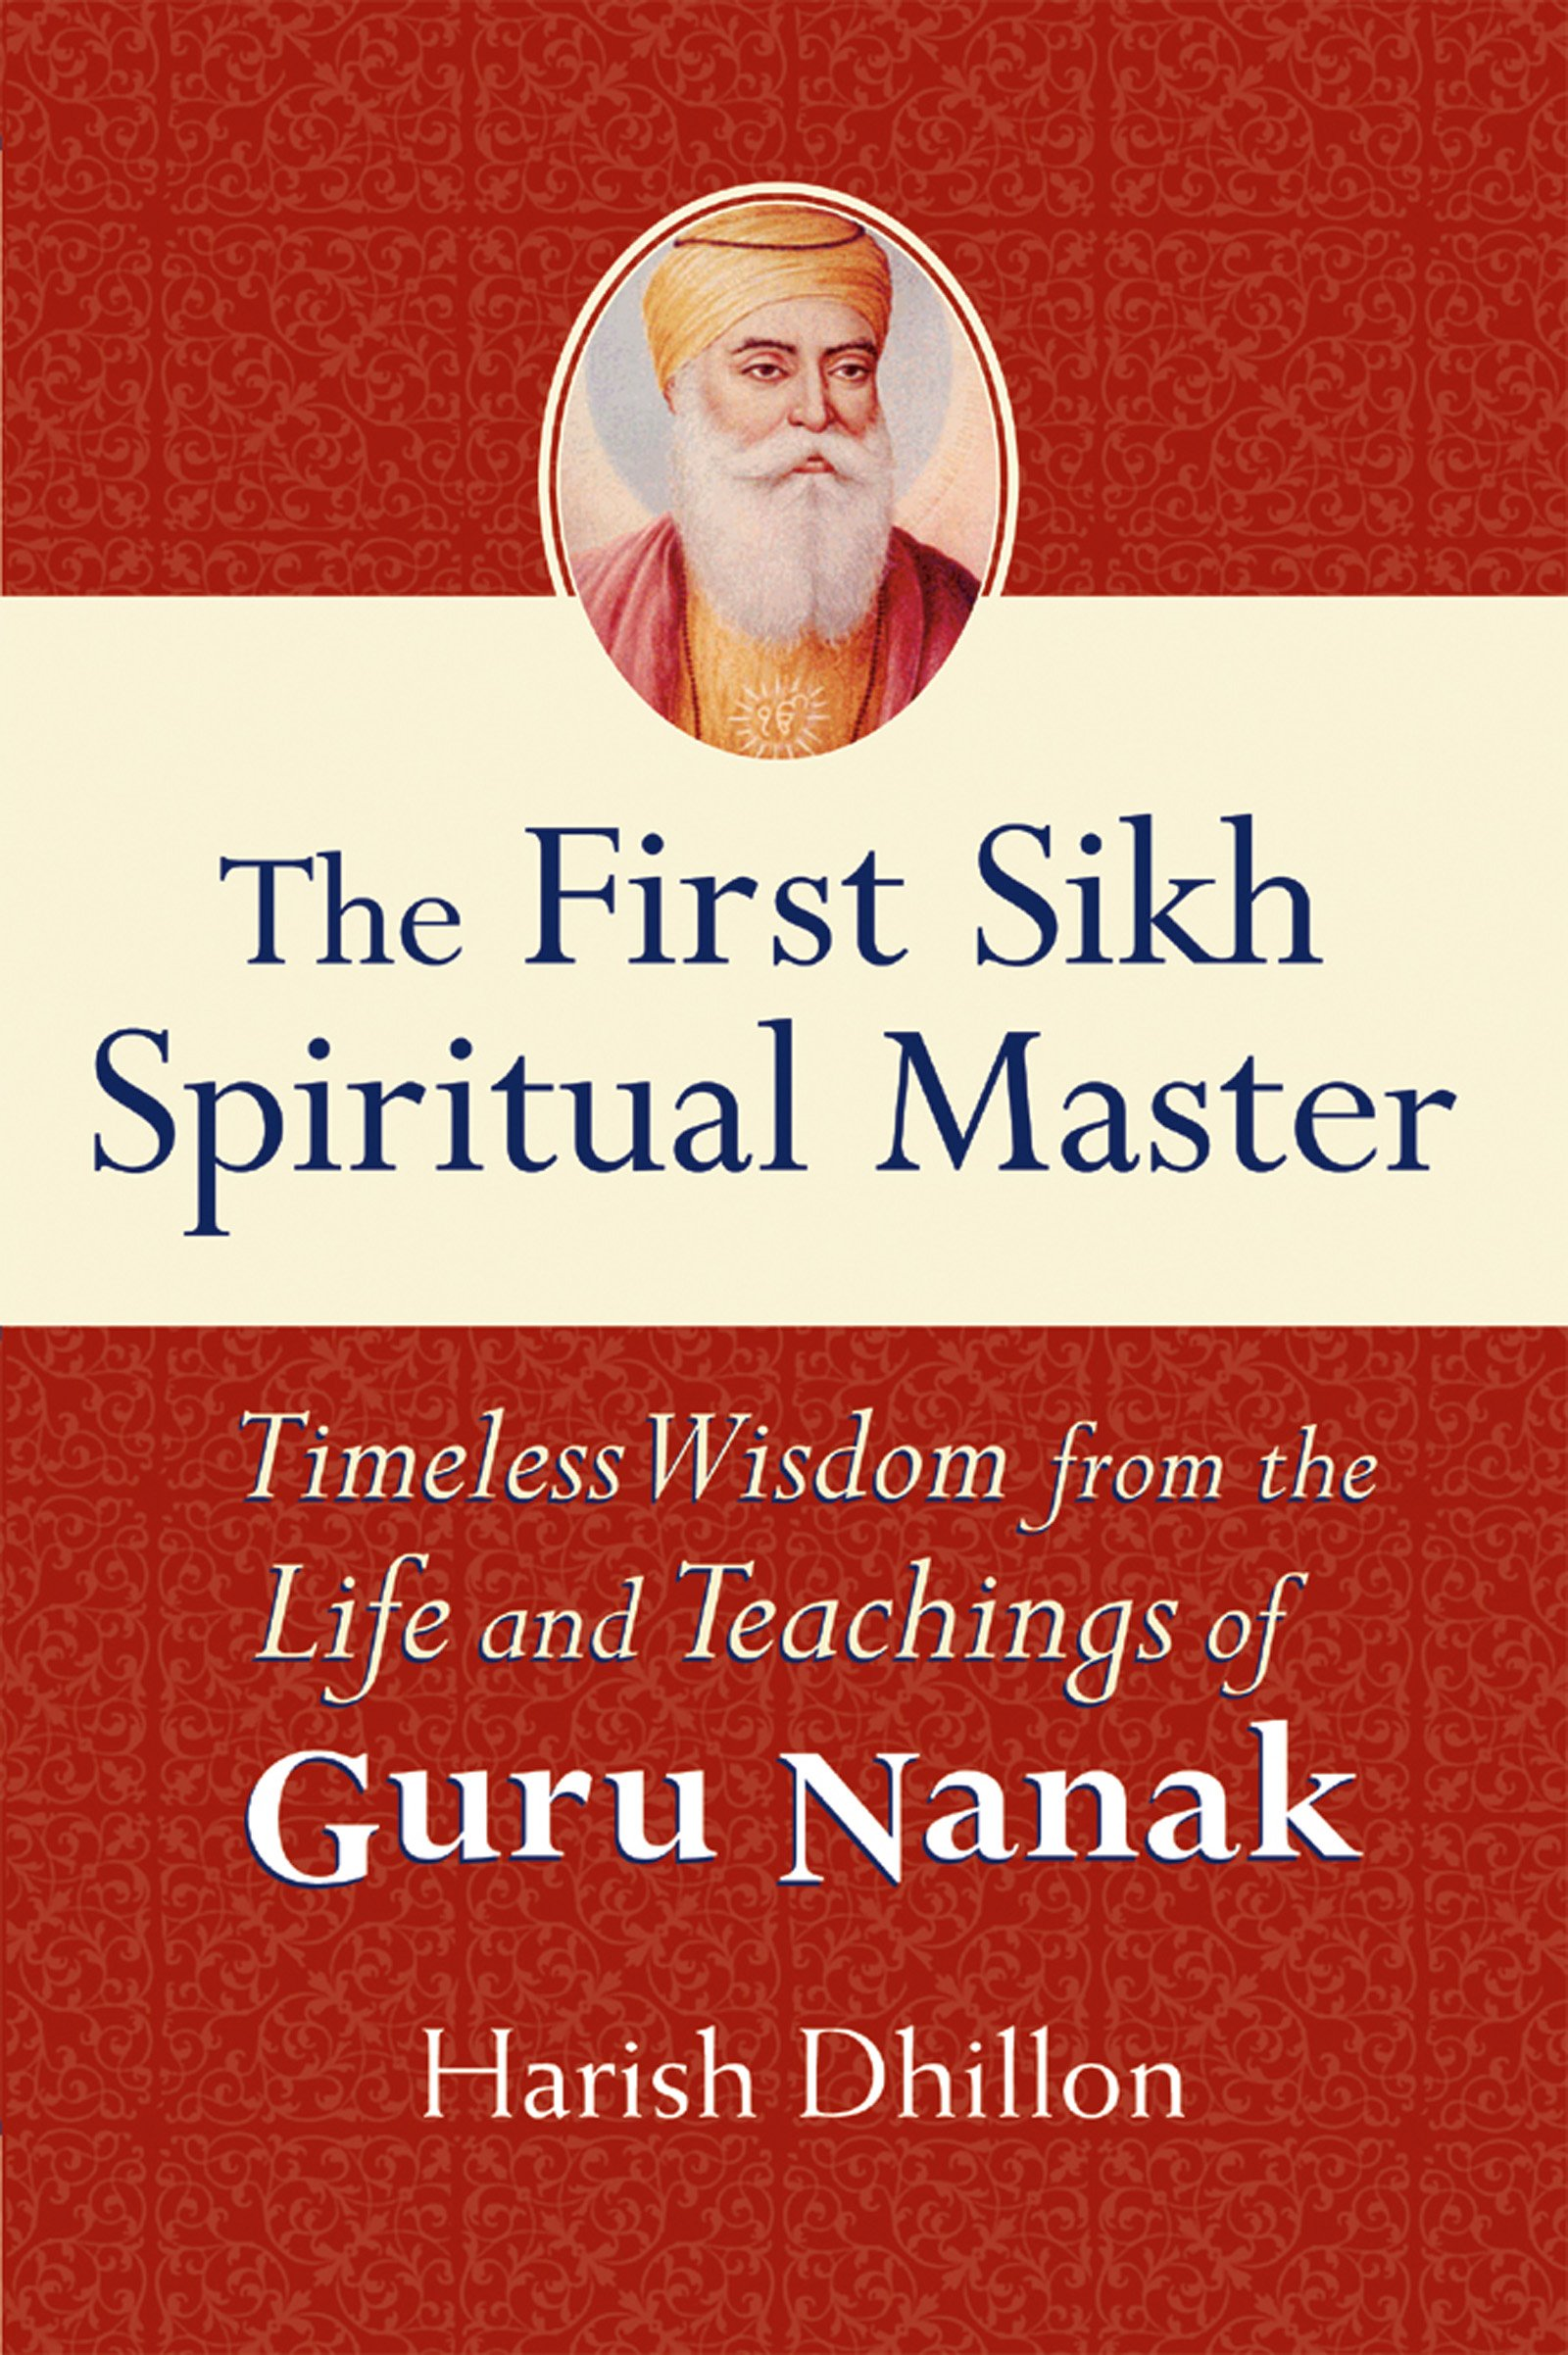 The First Sikh Spiritual Master: Timeless Wisdom